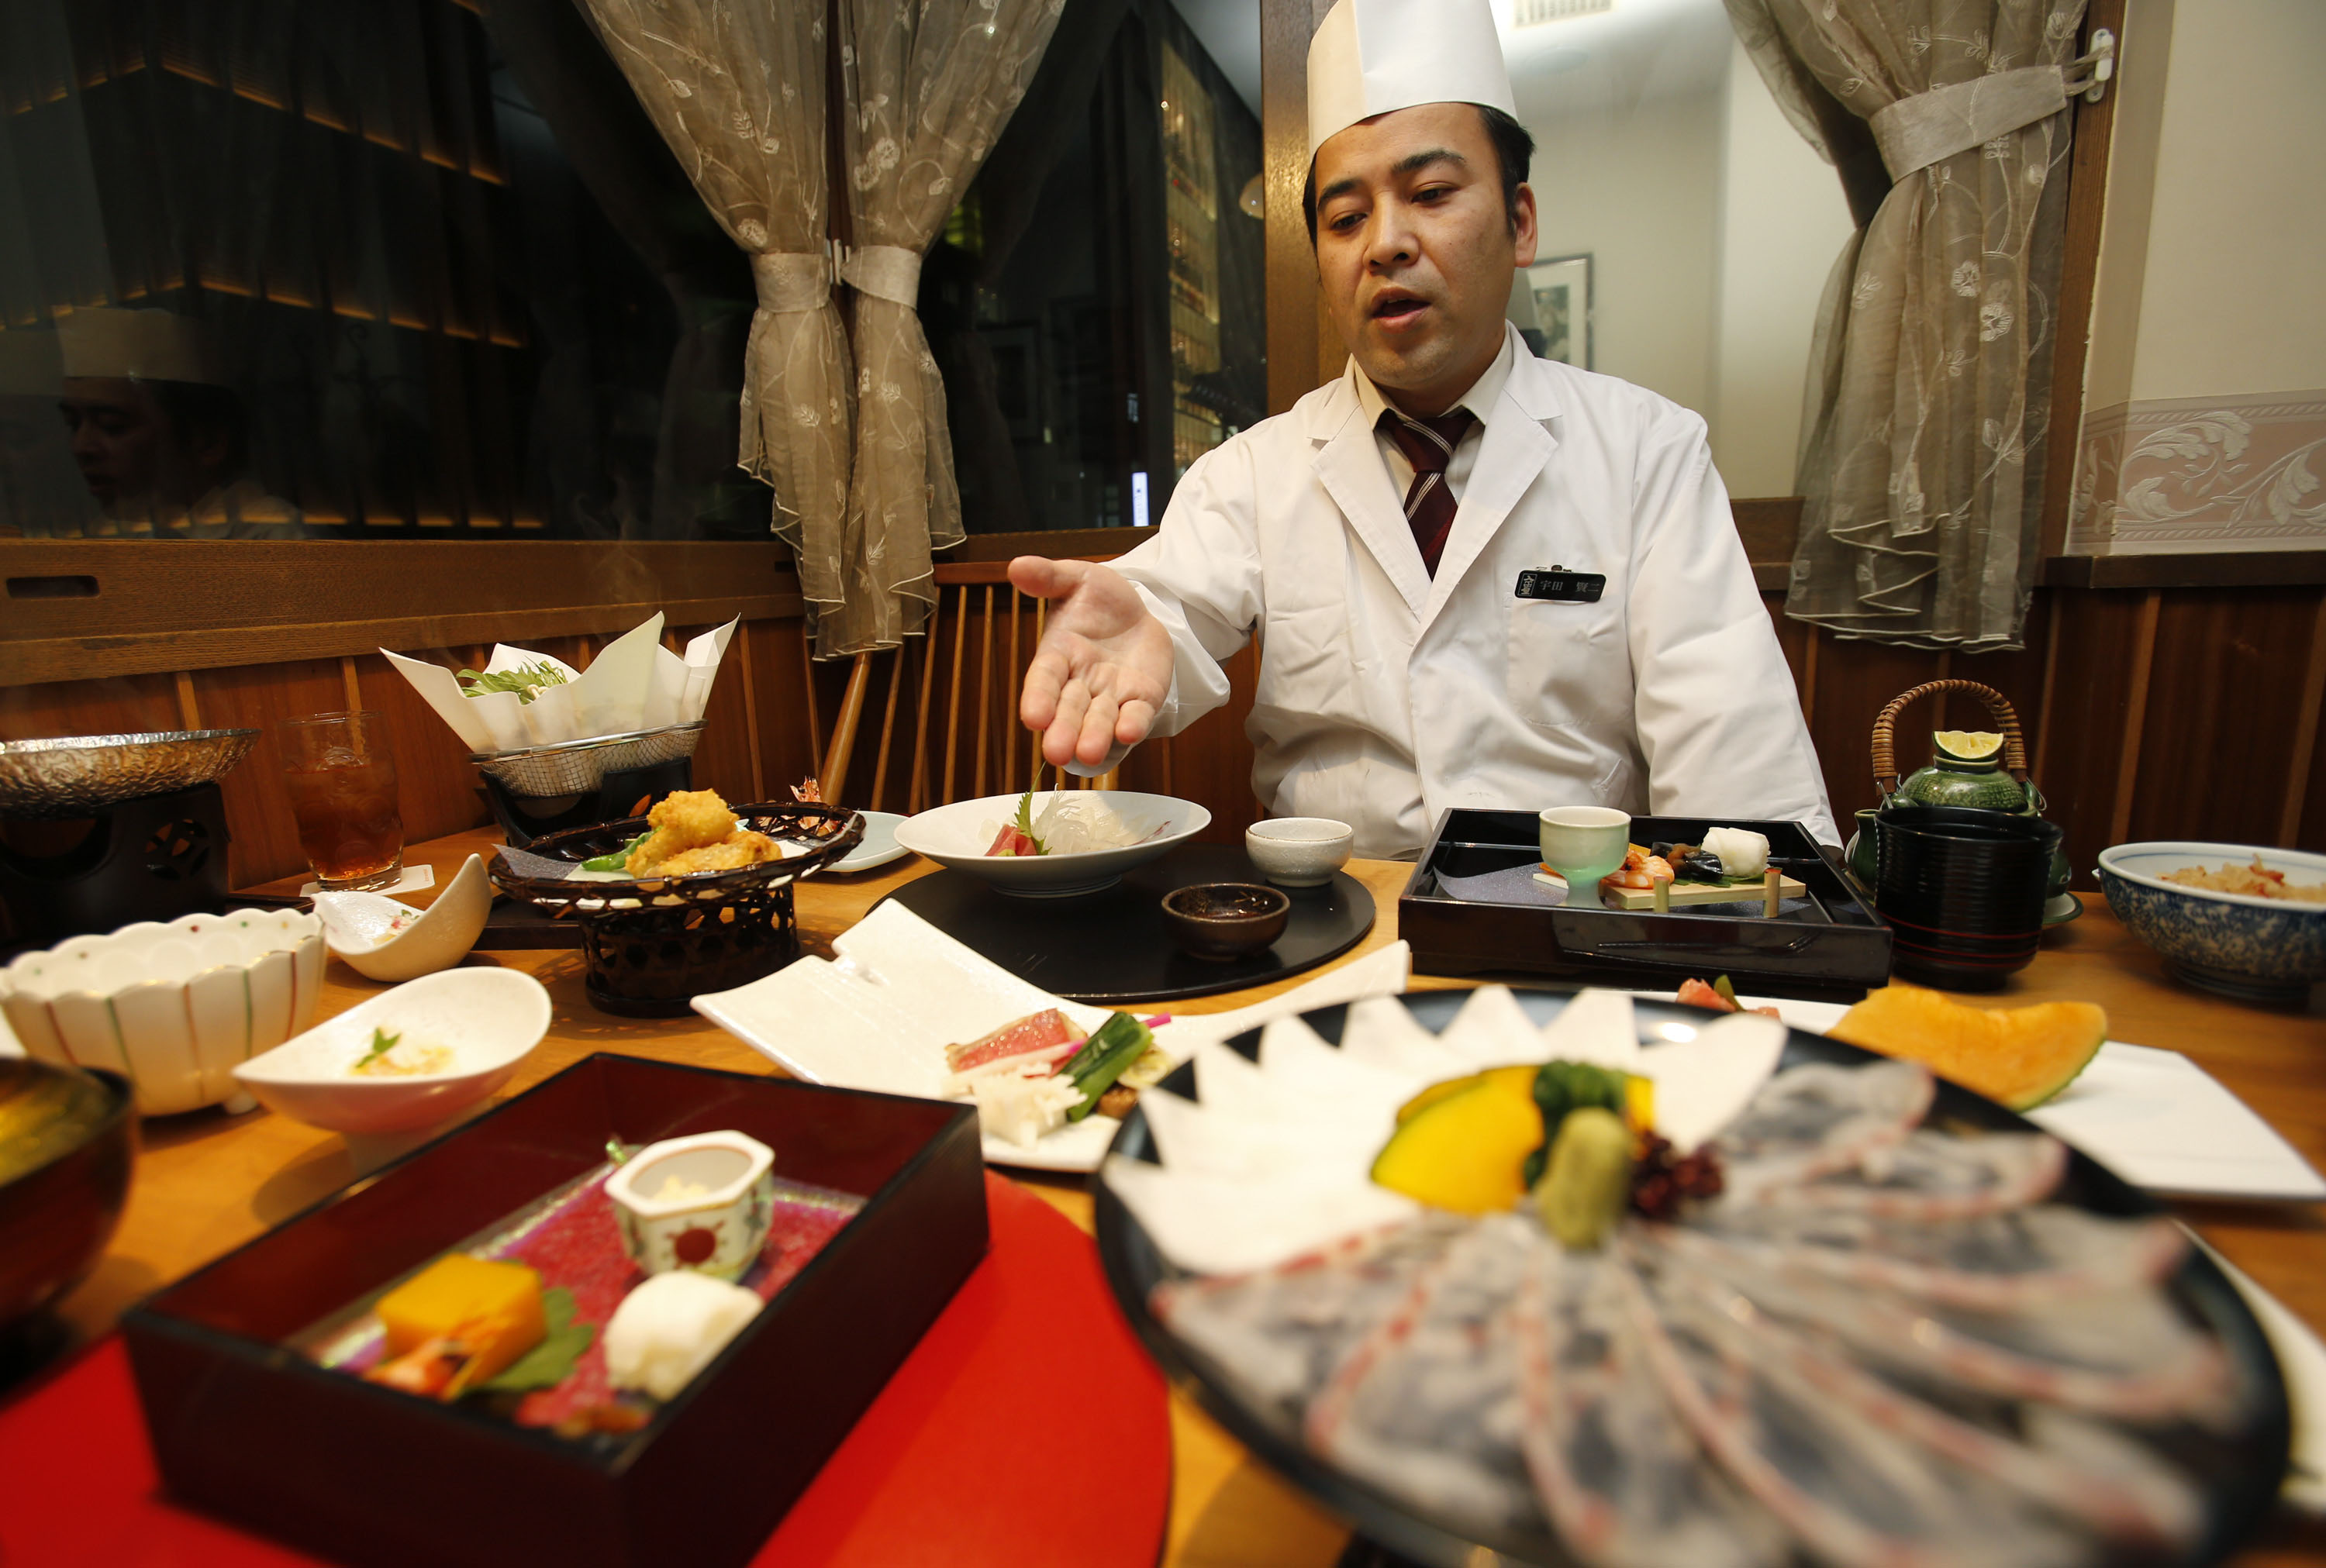 In this Wednesday, Nov. 27, 2013 photo, chief chef Kenji Uda explains about the menu at Japanese restaurant Irimoya Bettei in Tokyo. Washoku, the traditional cuisine of Japan, is being considered for designation as part of the worldfs priceless cultural heritage by the U.N. this week. But even as sushi and sake booms worldwide, purists say its finer points are candidates for the endangered list at home. The younger generation is increasingly eating Krispy Kreme donuts and McDonaldfs, not rice. Uda, 47, says he was 17 when he decided to devote his life to washoku. gJapanese food is so beautiful to look at,h he said. gBut it takes a lot of time. People are working and busy, and no longer have that kind of time.h (AP Photo/Shizuo Kambayashi)